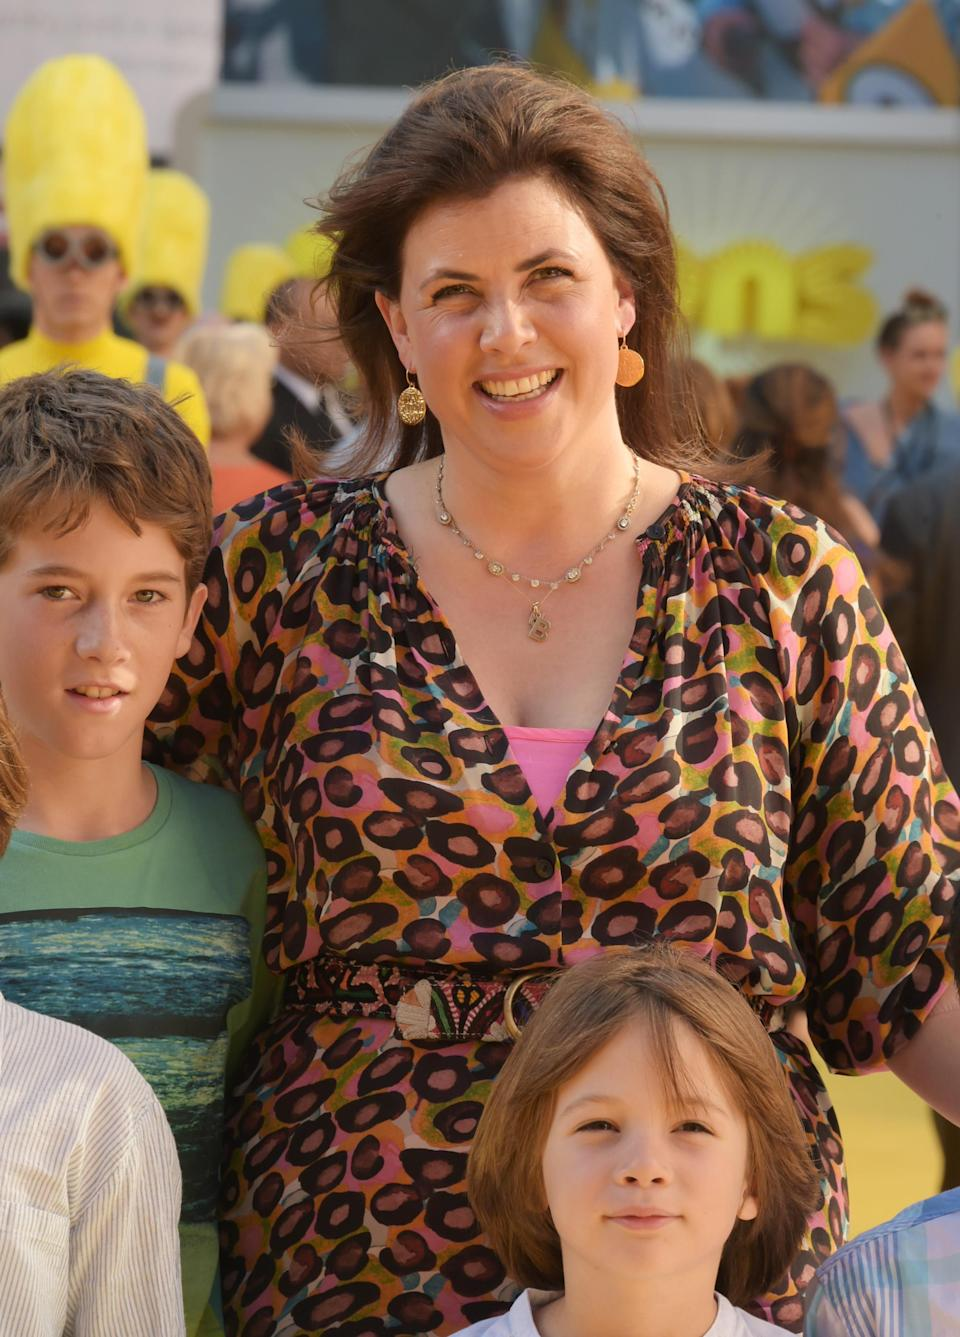 Kirstie Allsopp and her kids attend the World Premiere of Minions at Odeon Leicester Square. (Getty)